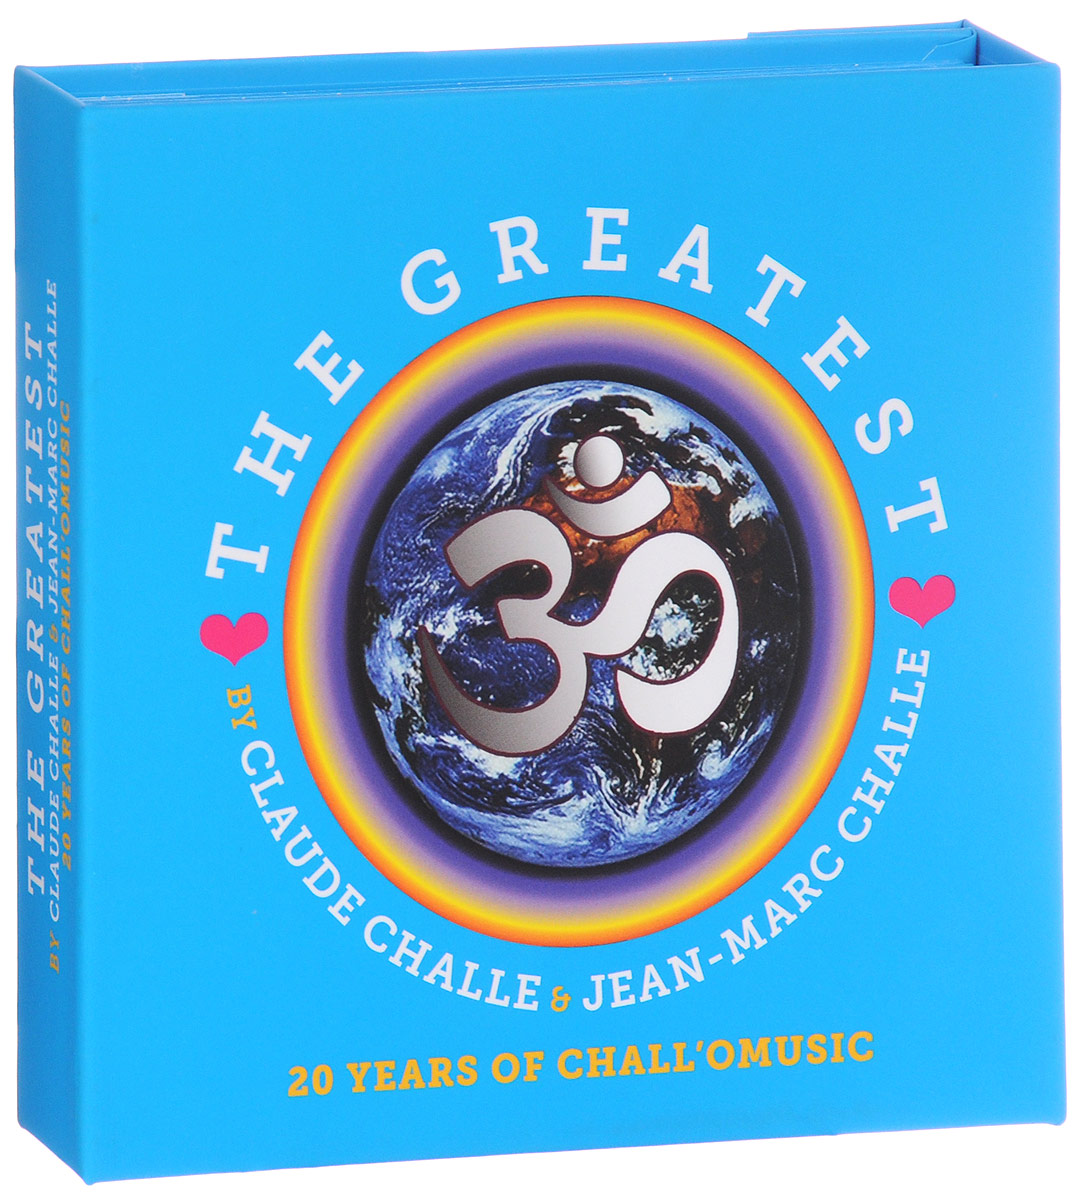 Claude Challe & Jean-Marc Challe. The Greatest (6 CD)